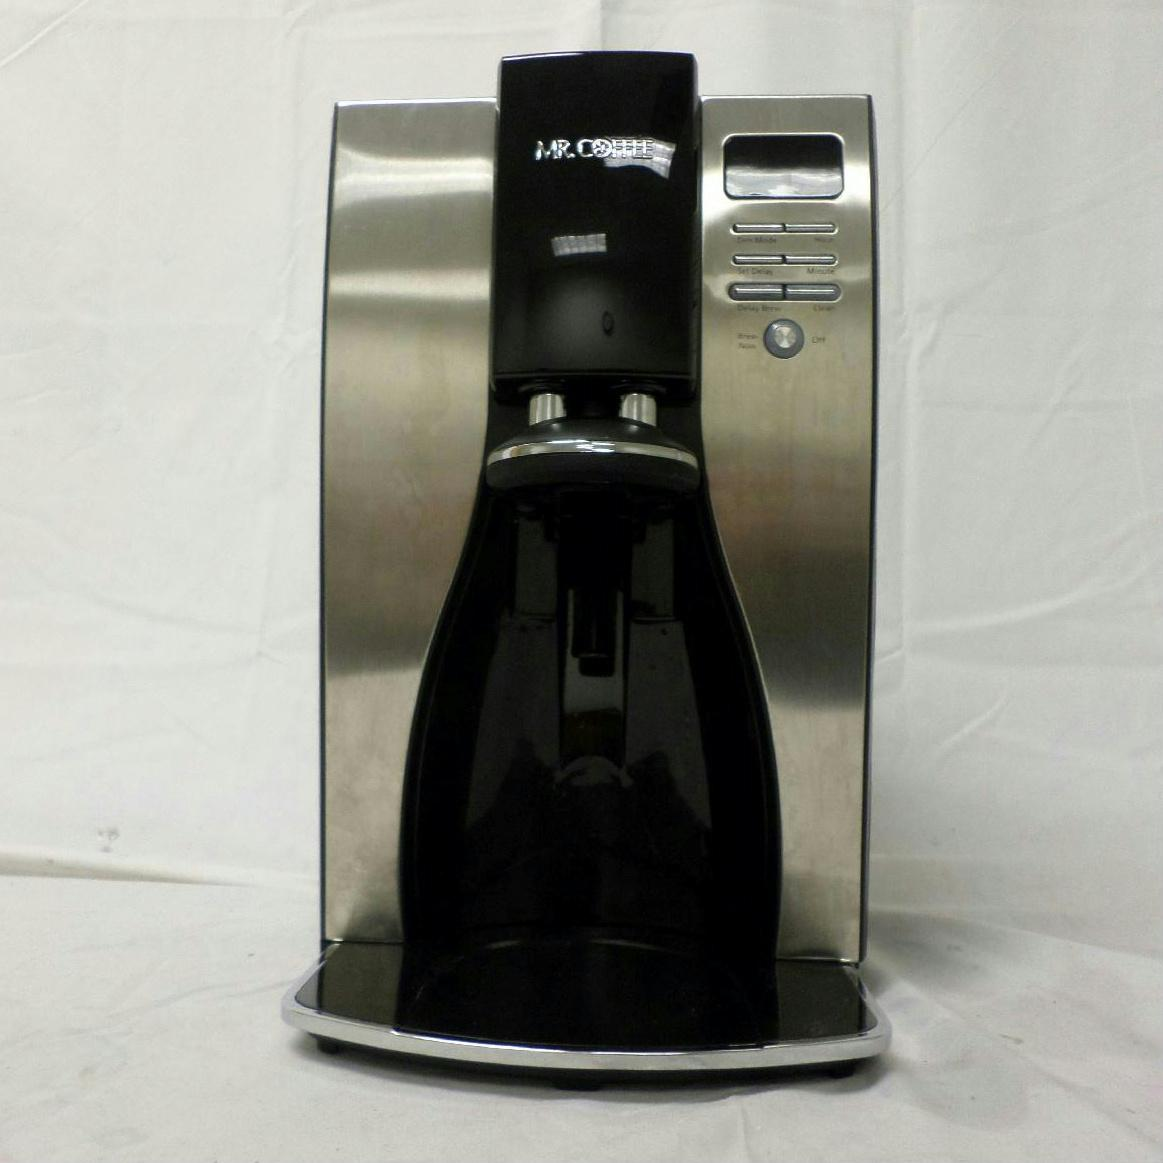 Mr Coffee BVMC PSTX91 Optimal 10 Cup Stainless Steel Thermal Coffee Maker Black eBay